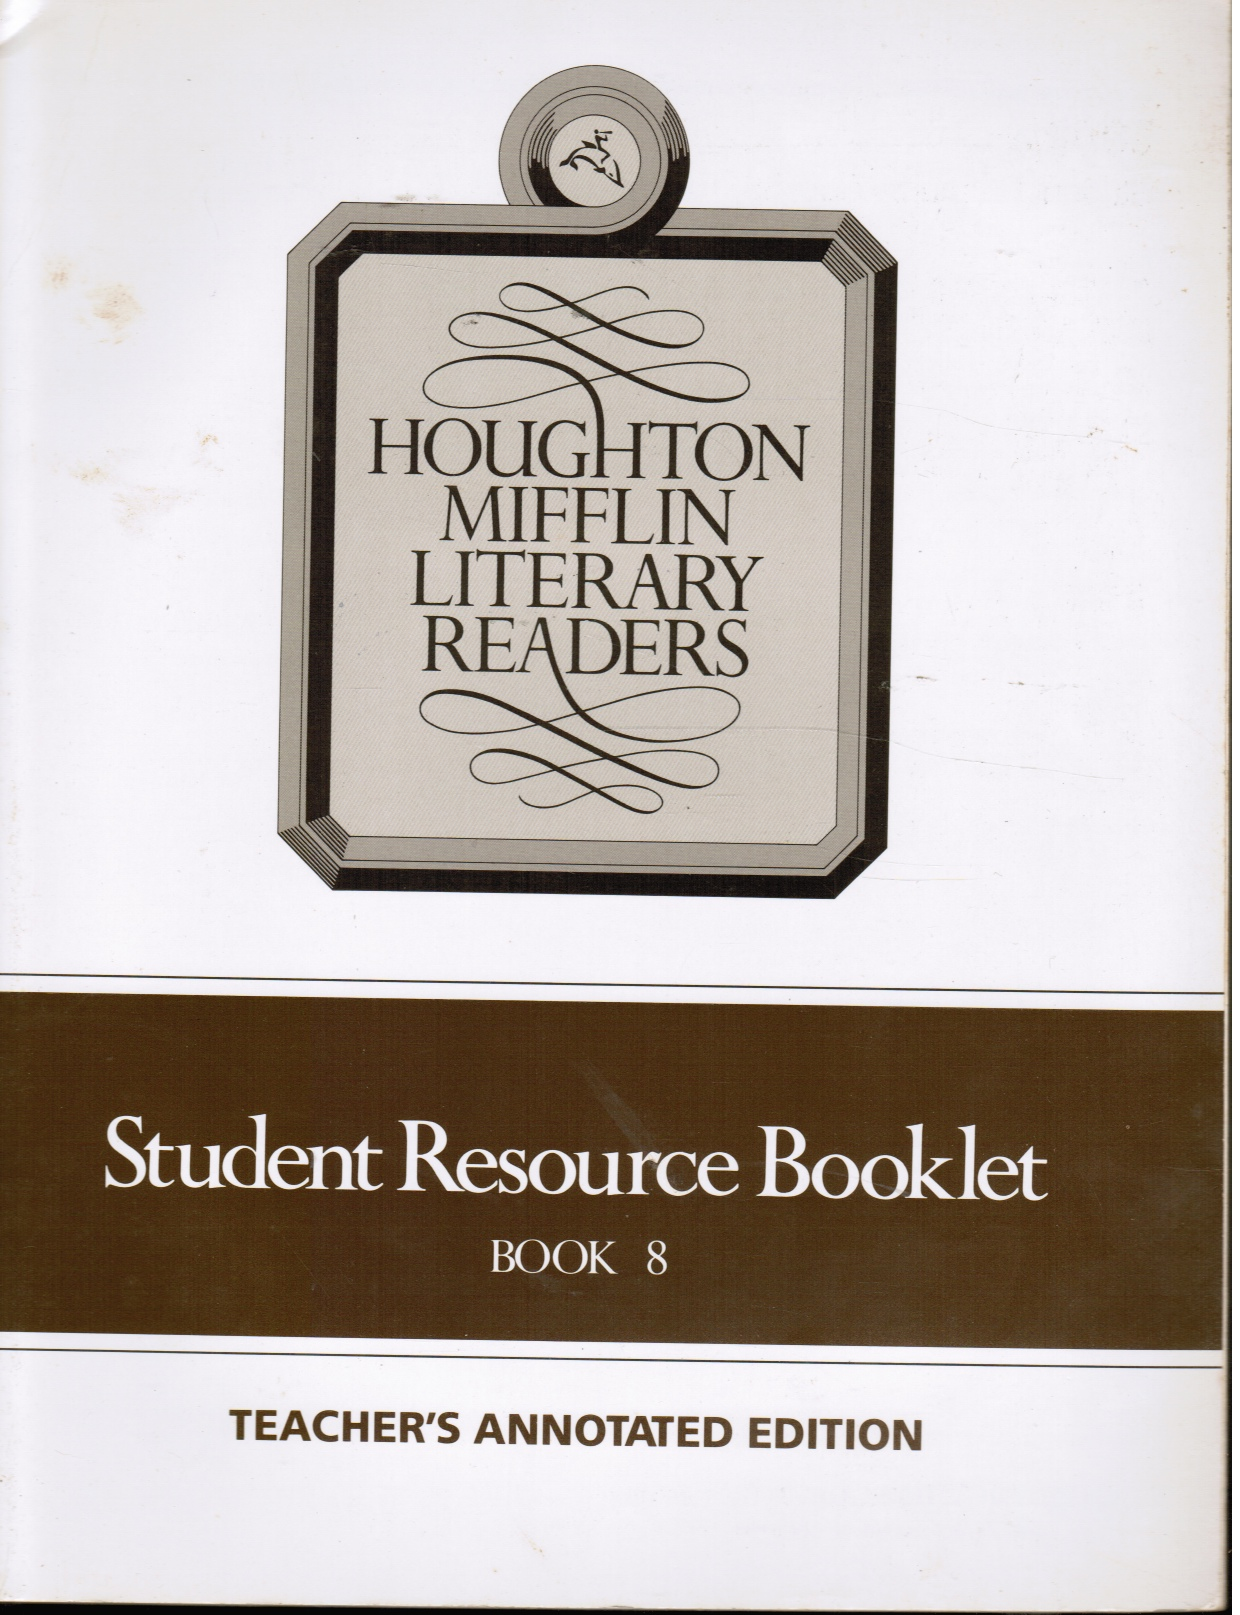 Image for Houghton Mifflin Literary Readers: Student Resource Booklet Book 8 Teacher's Annotated Edition